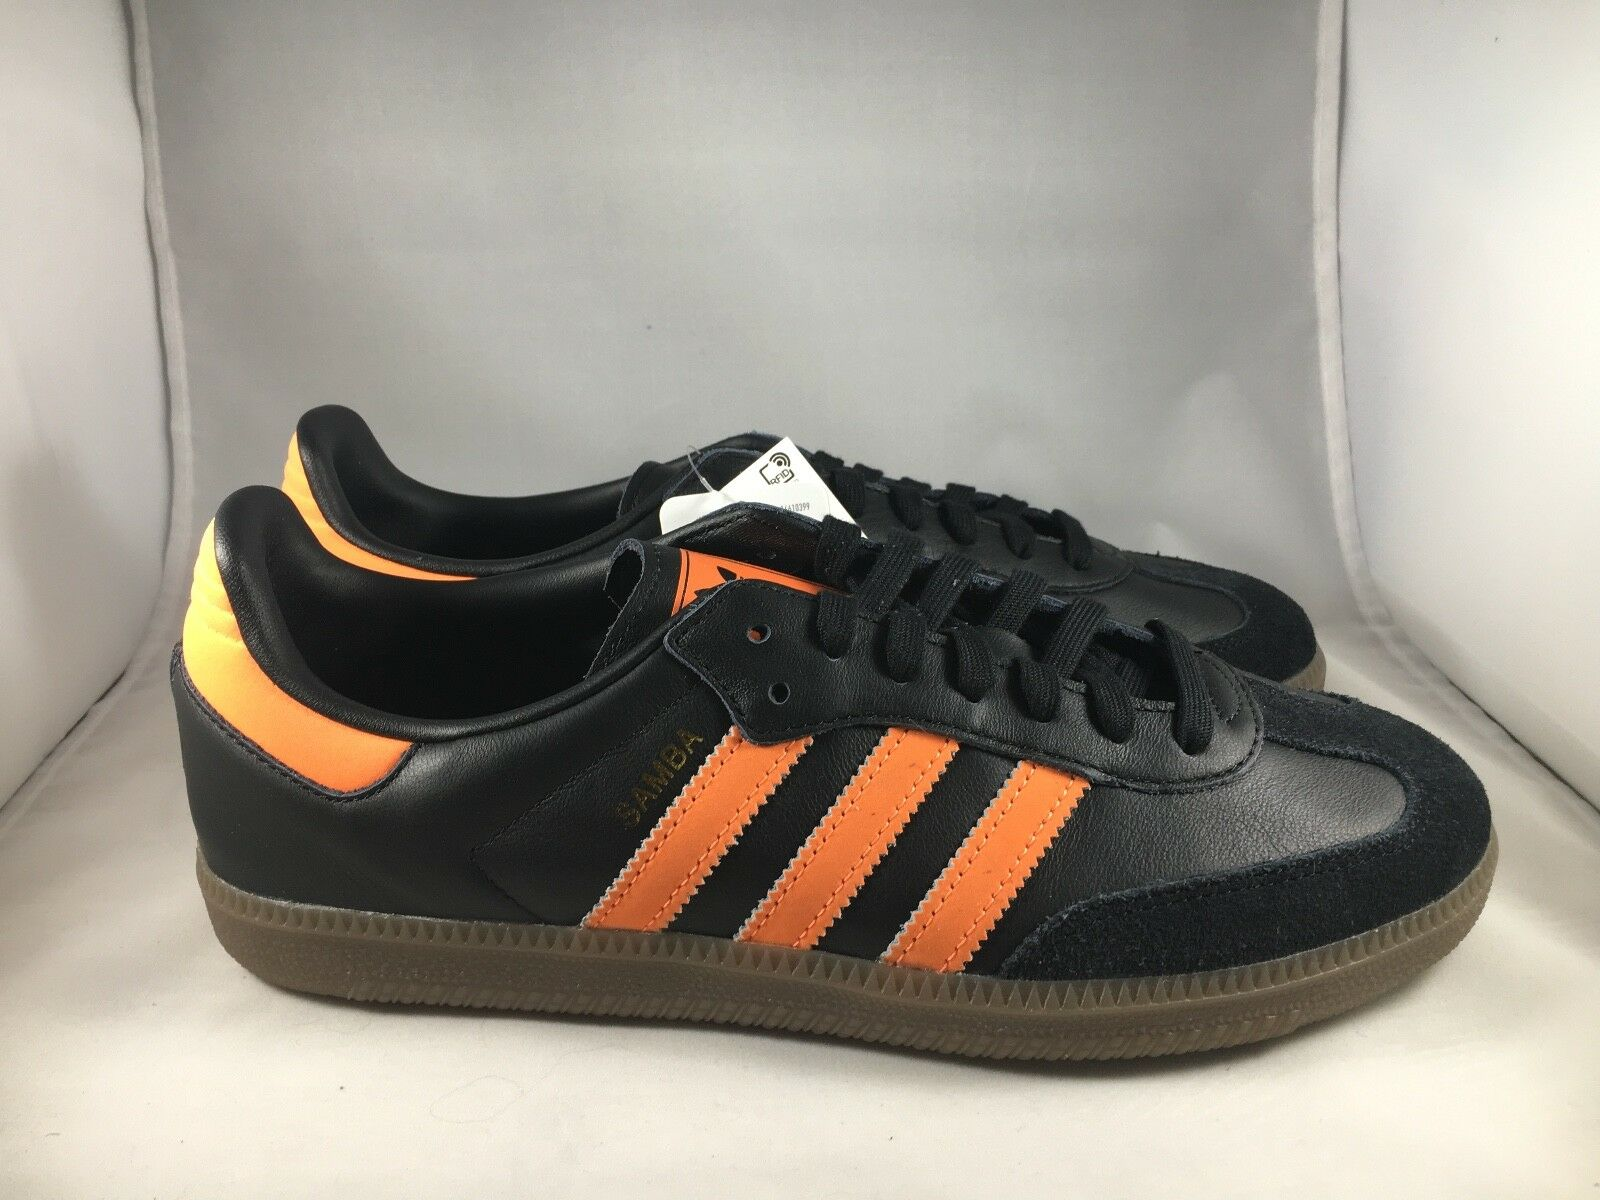 Adidas Adidas Adidas Samba OG Mens Size B75804 Black orange gold 5b0b89